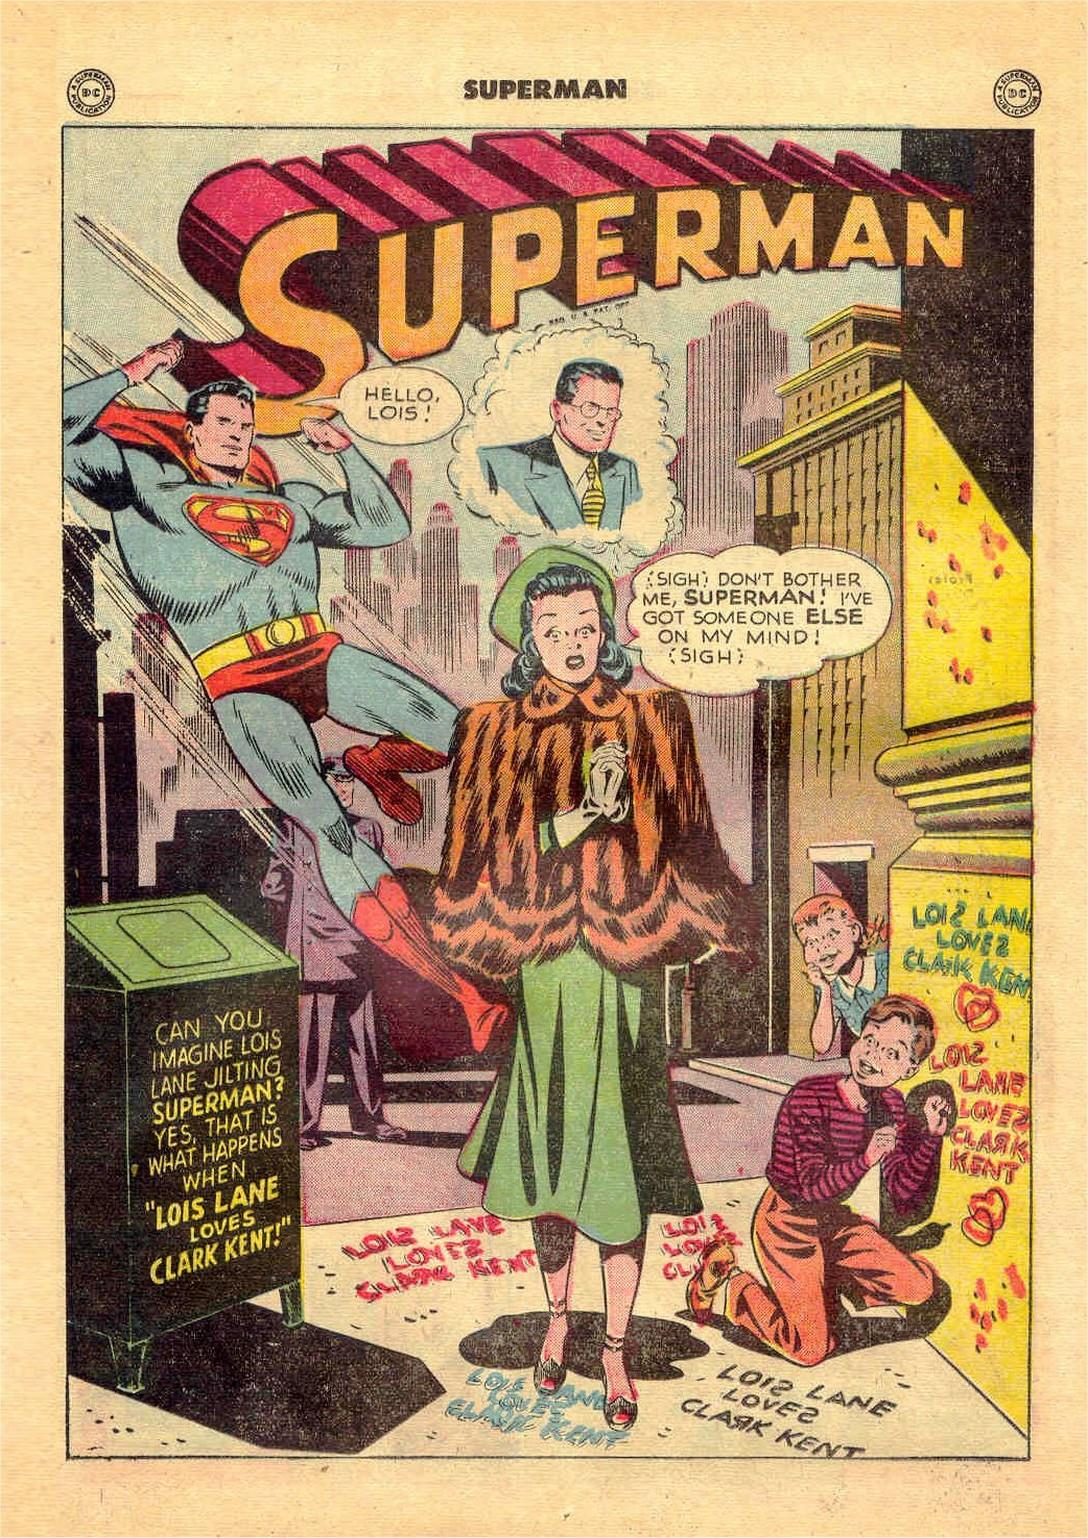 Superman in the Forties review